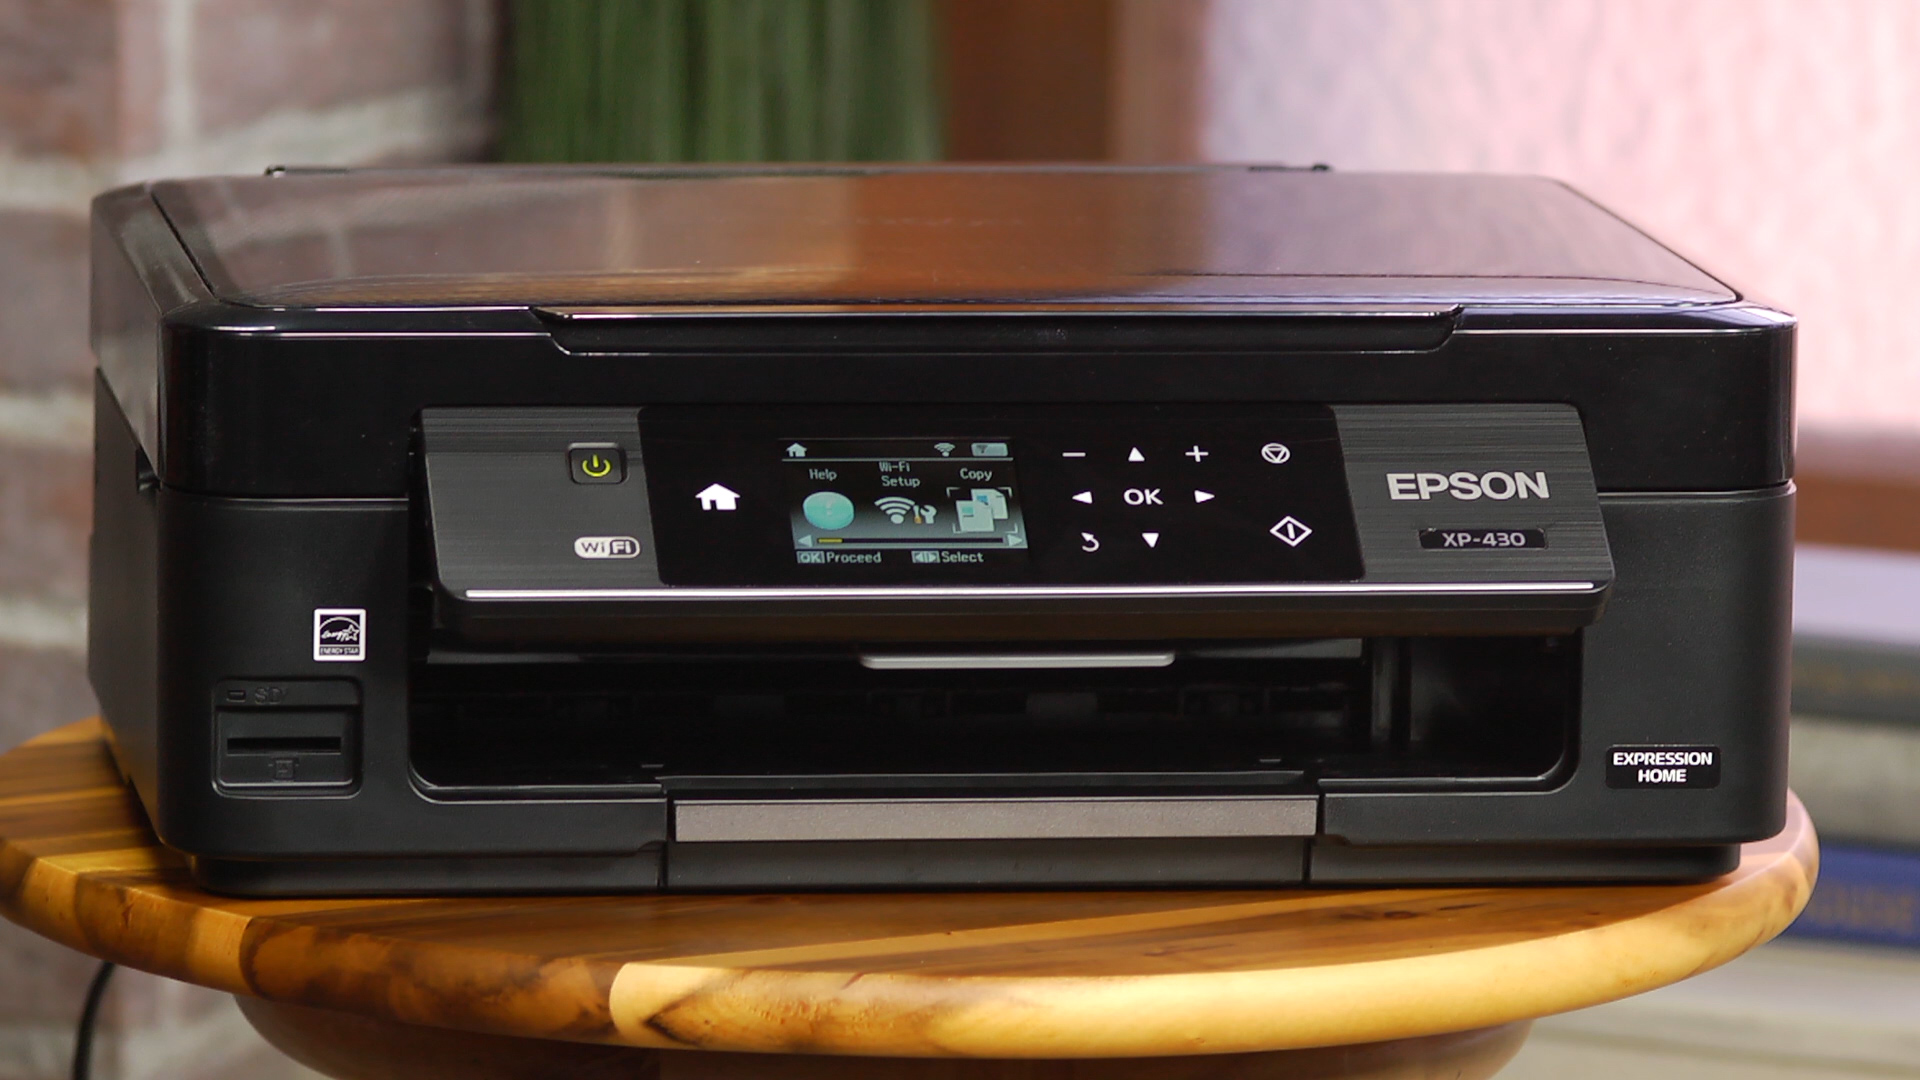 Video: Take back your work space with the compact Epson XP-430 all-in-one printer